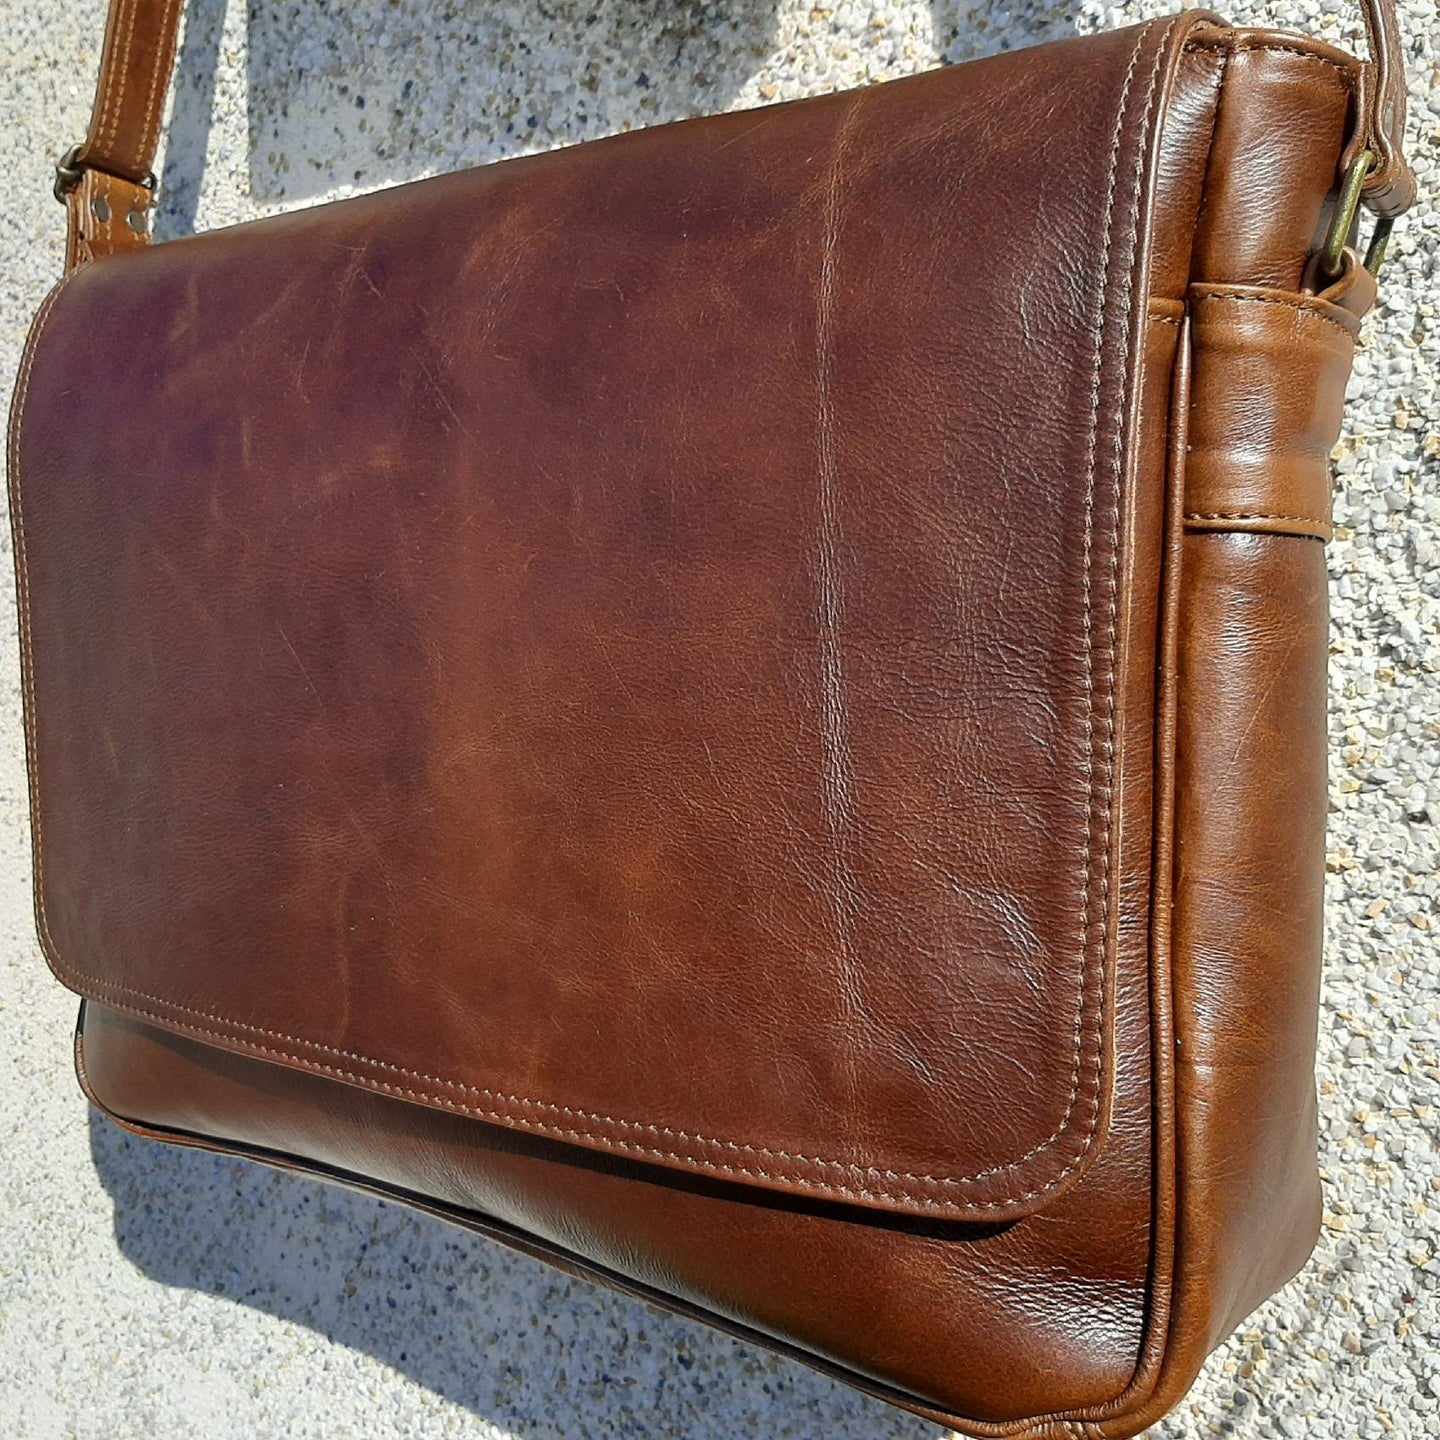 Men's laptop bag 15